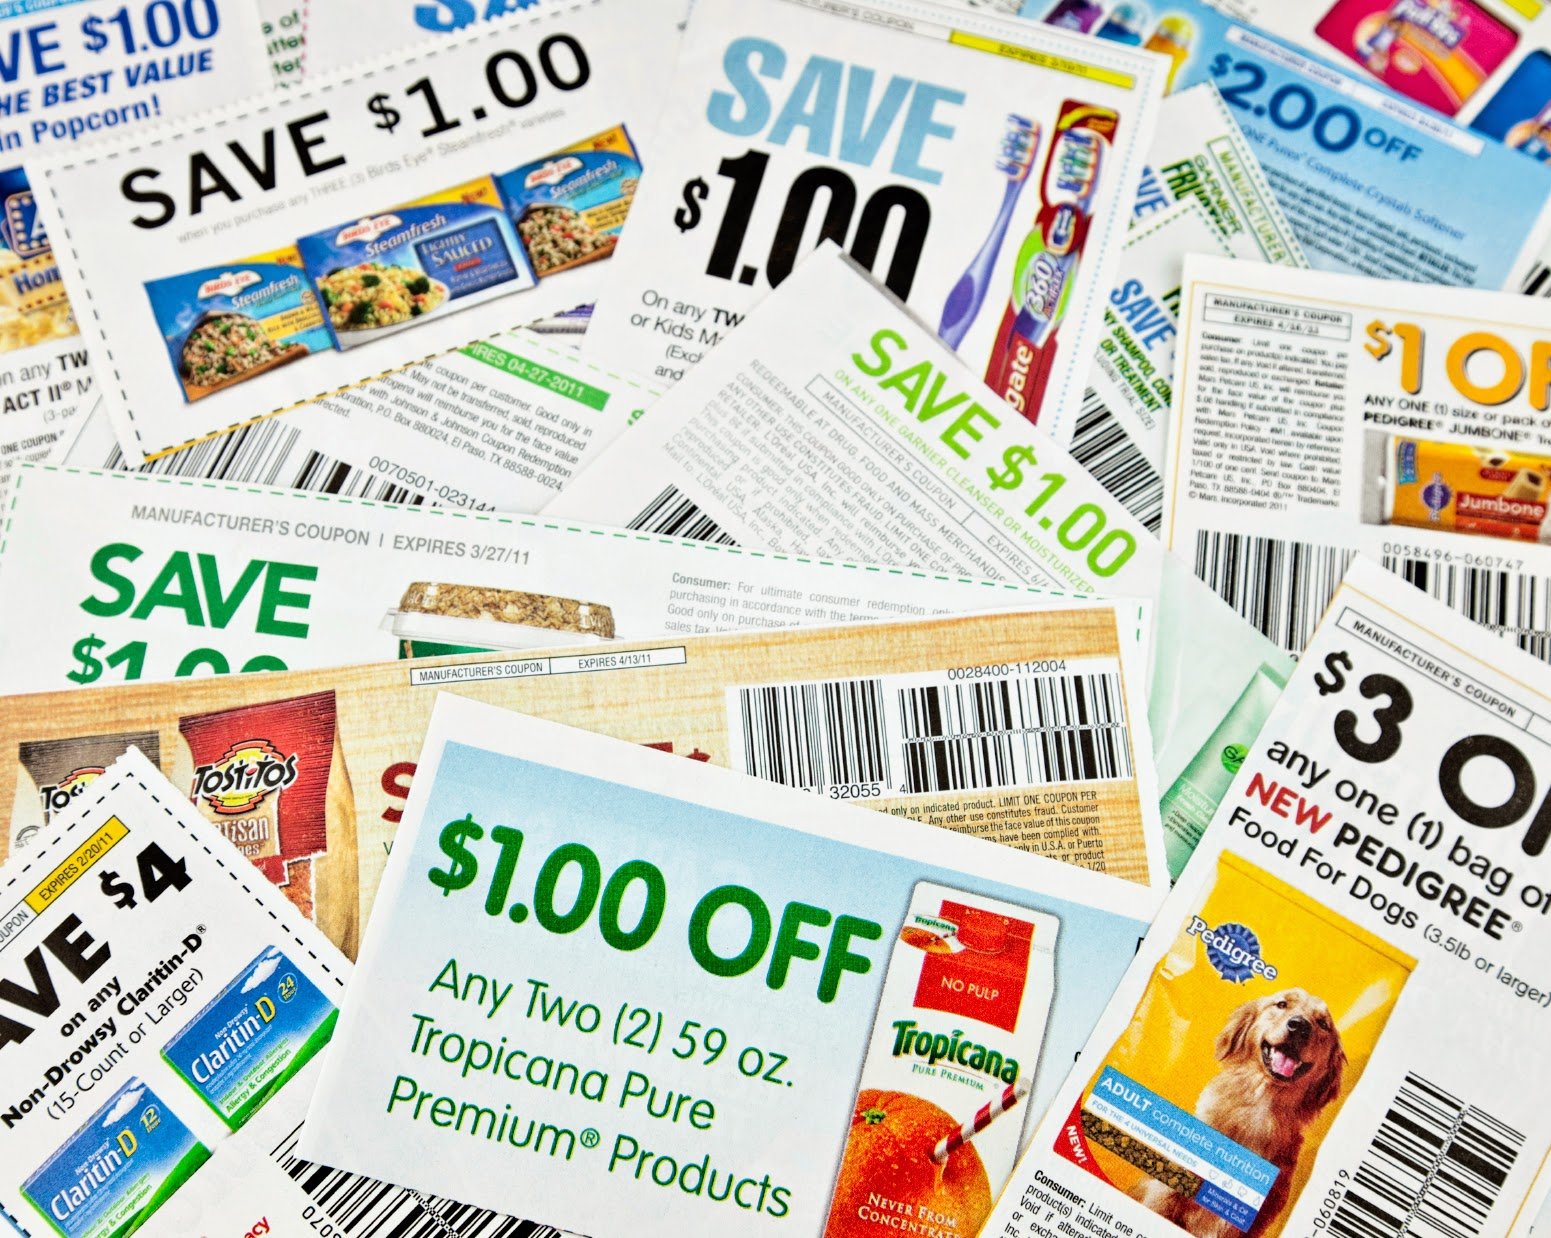 Manage the list of coupons in the queue then print them when you are ready. Print these coupons now. You have not added any coupons to the print queue.